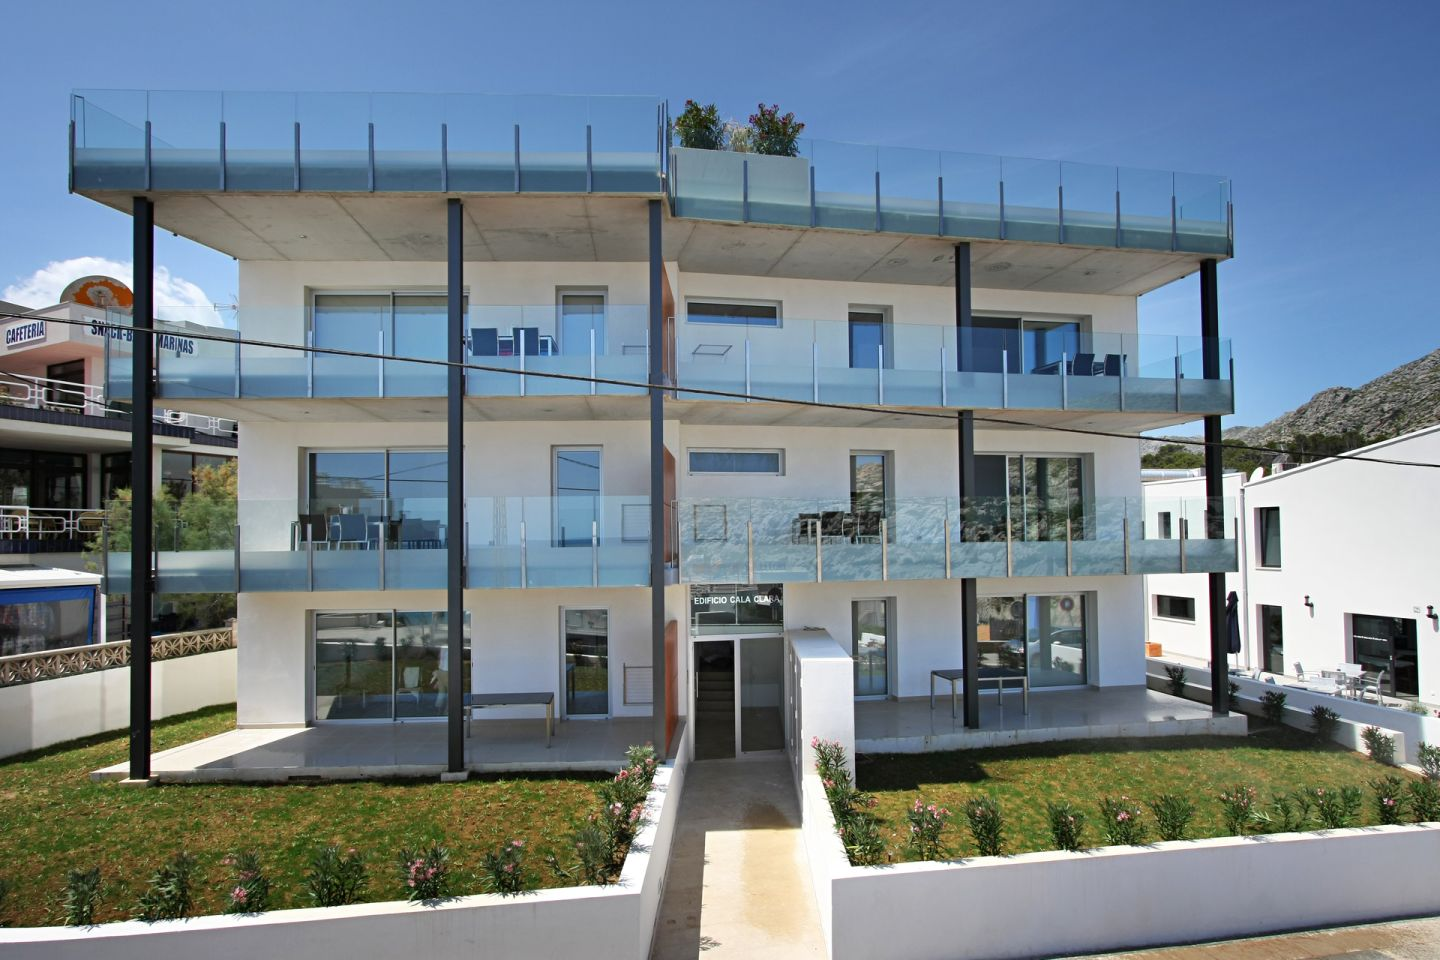 2 Bed Ground Floor for sale in Cala San Vicente 1